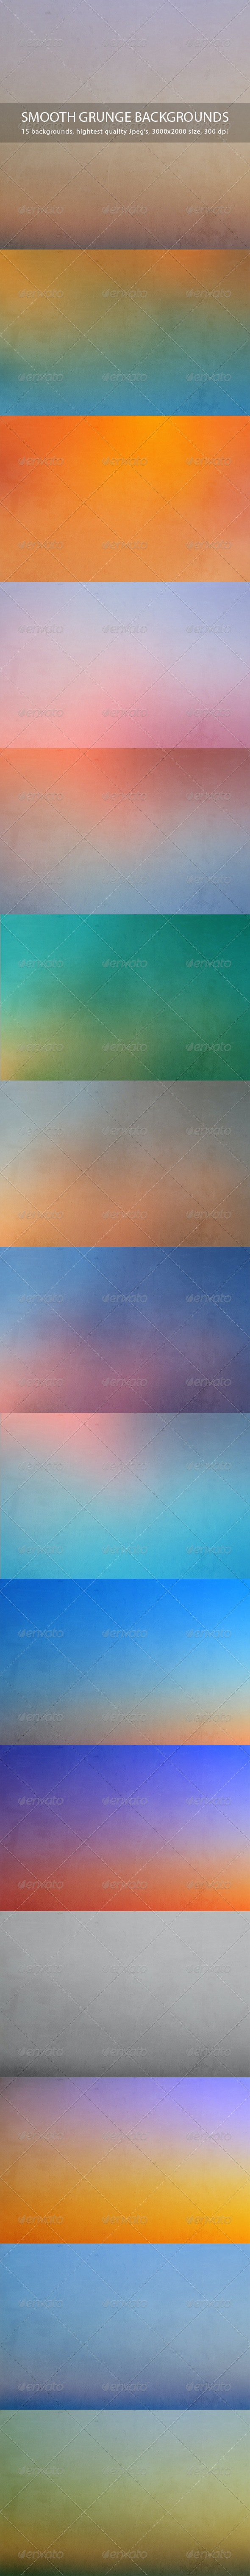 Smooth Grunge Backgrounds - Abstract Backgrounds